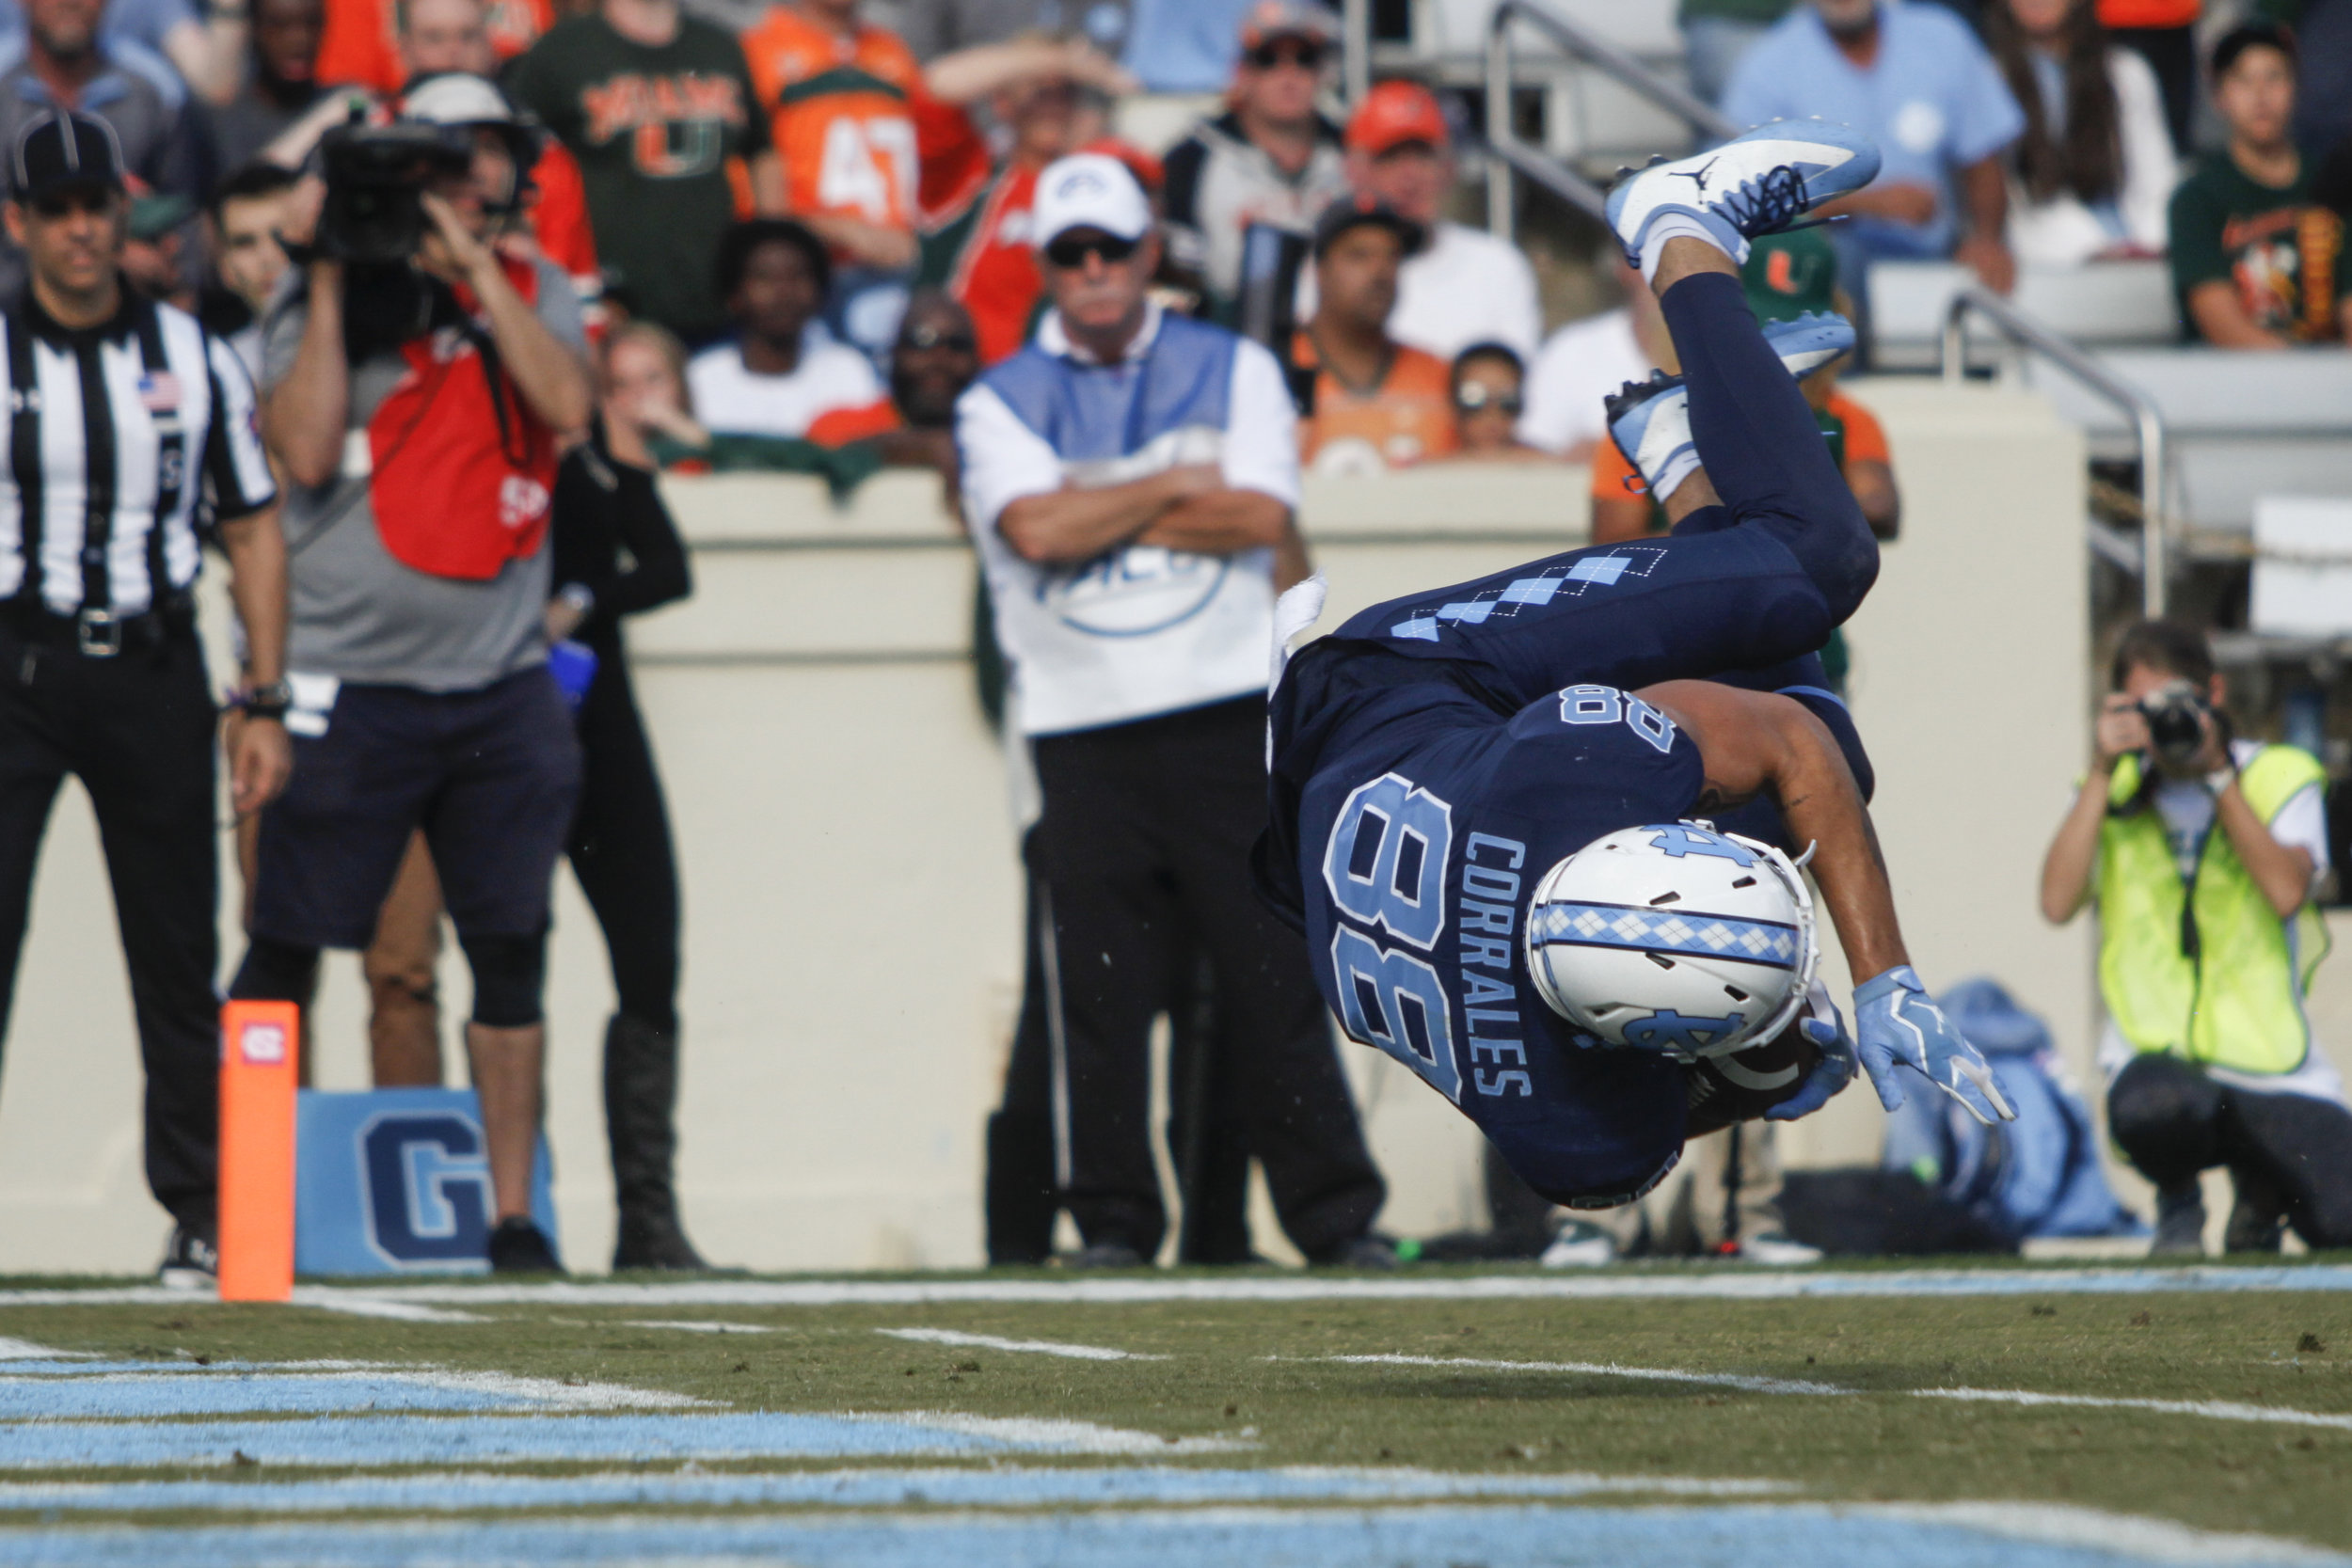 UNC wide receiver Beau Corrales spins into the endzone during the UNC vs. Miami game.